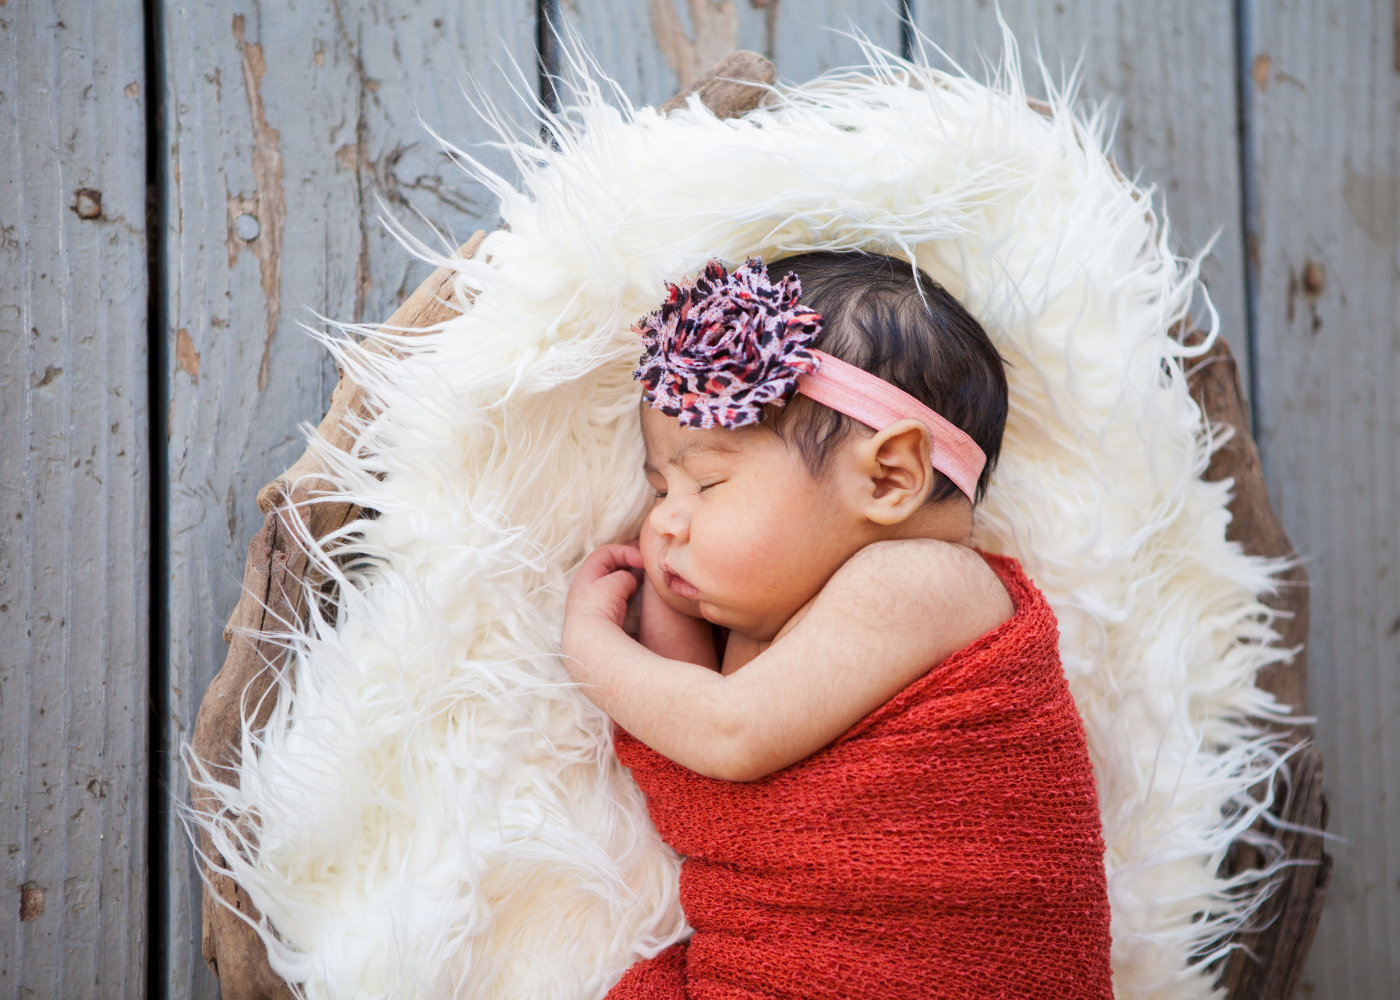 Outdoor Newborn Session baby in basket Hilmar CA